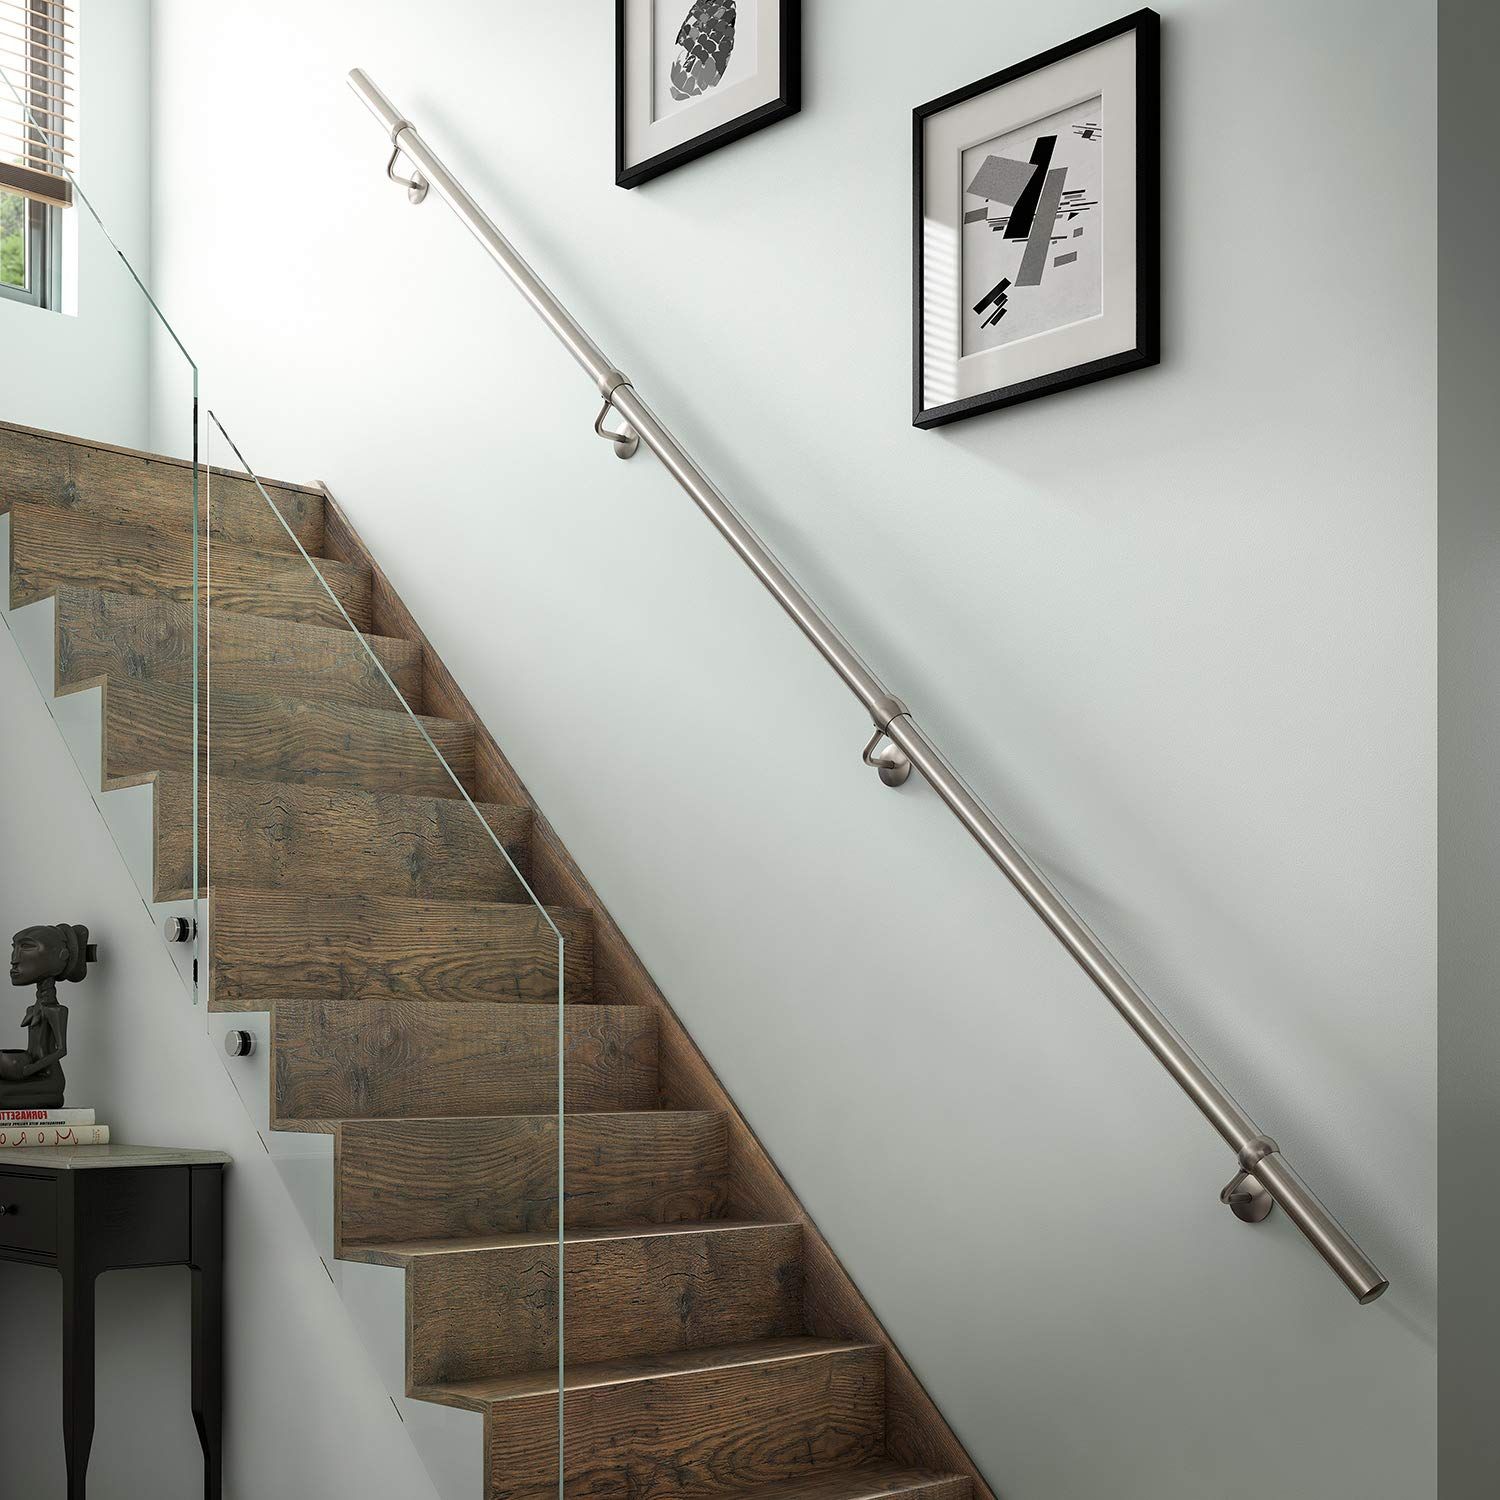 with Classic Domed End Caps Select Length Pre-assembled Satin-Polish Brushed Stainless Steel Stair Handrail